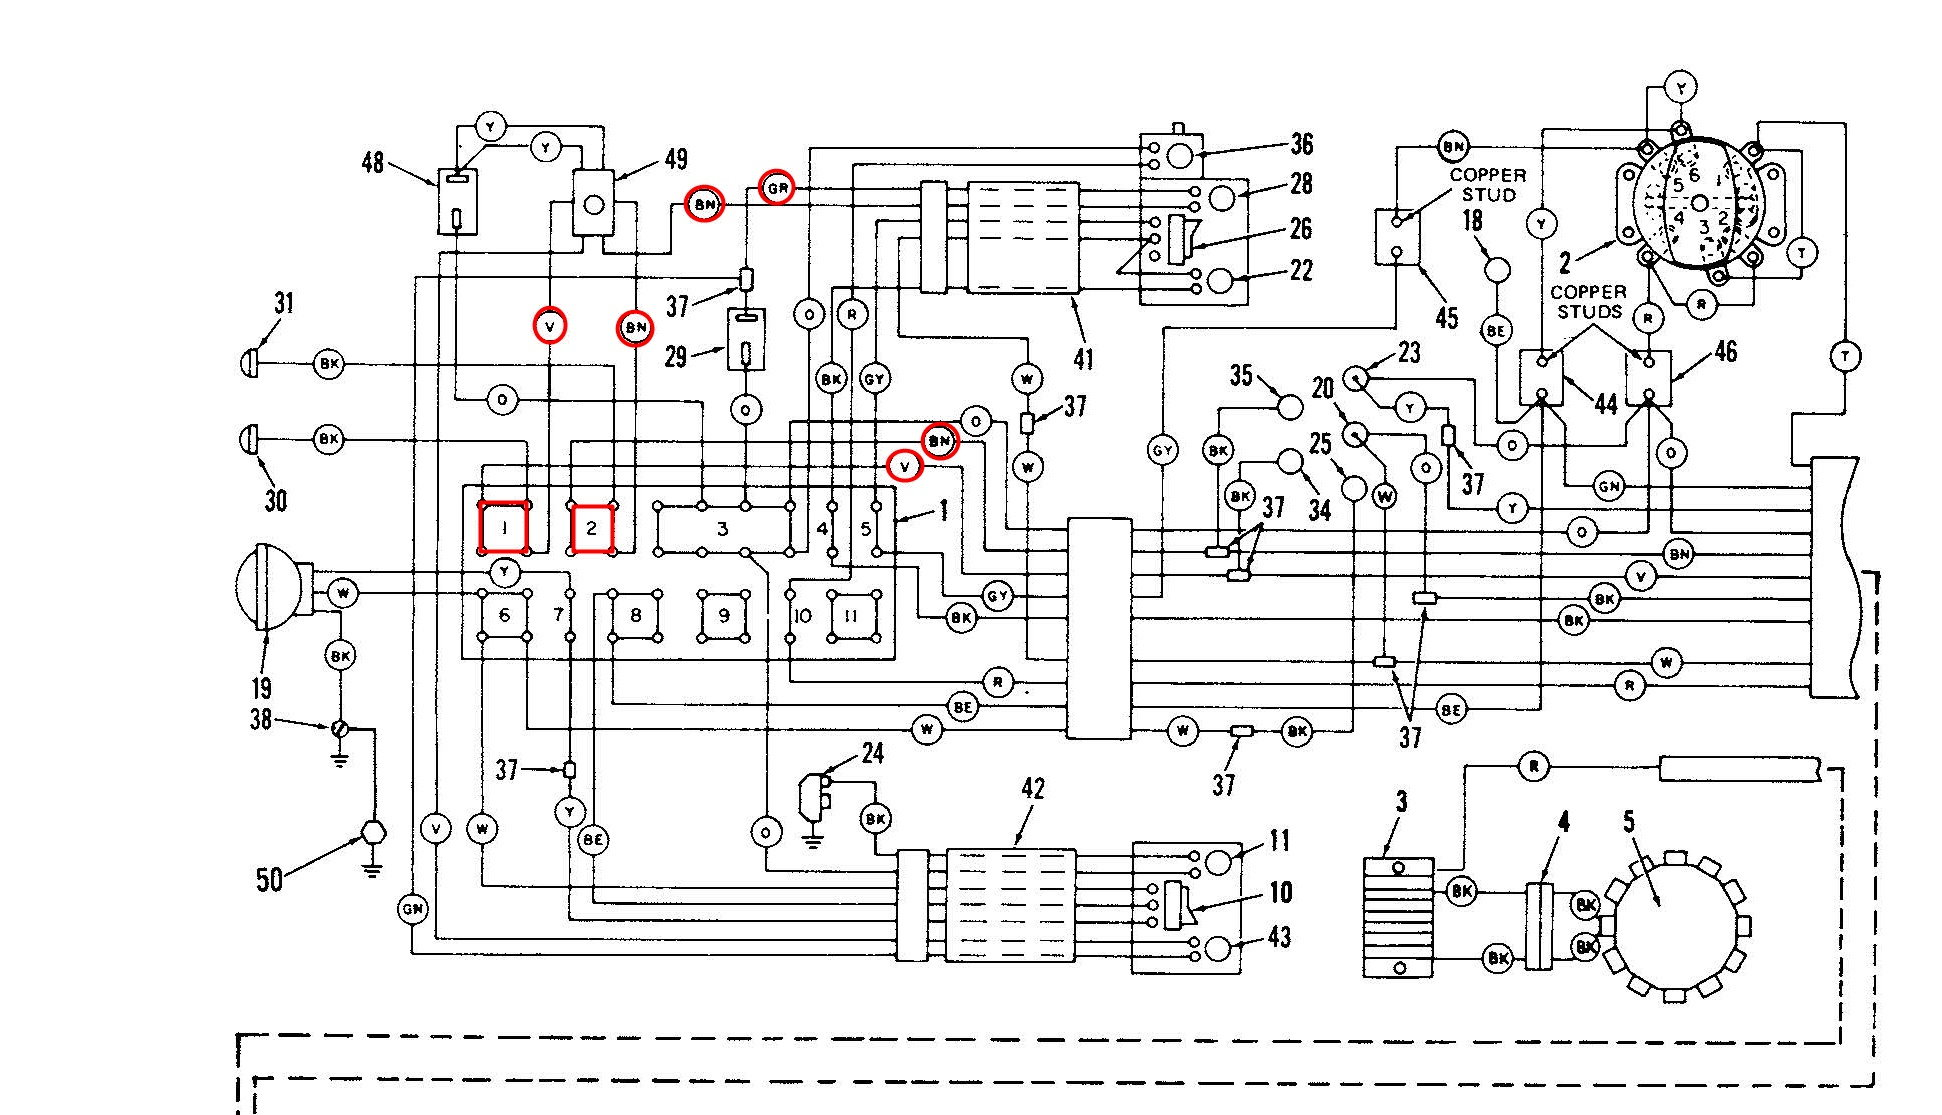 79 Flh-80 Turn Signal Wiring Questions - Page 2